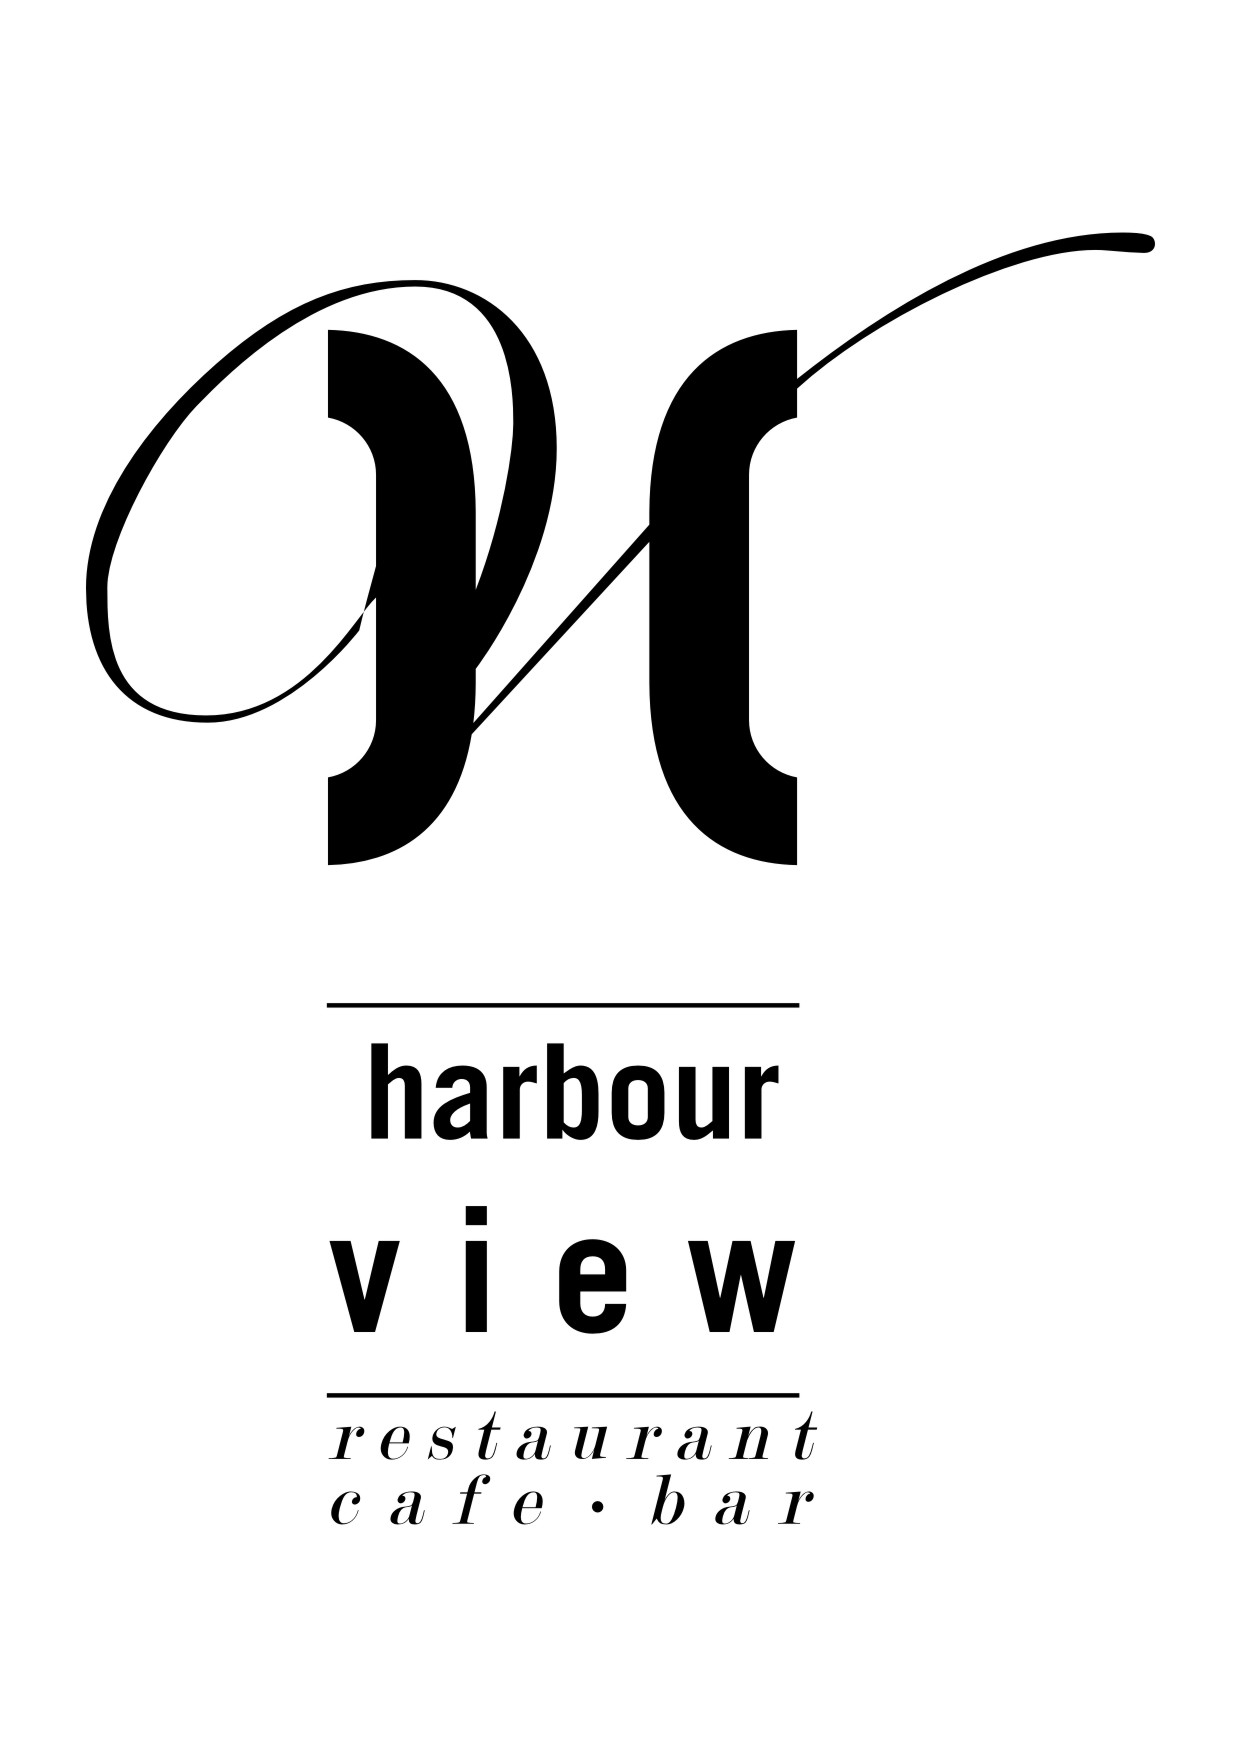 Harbour View Restaurant, Cafe and Bar